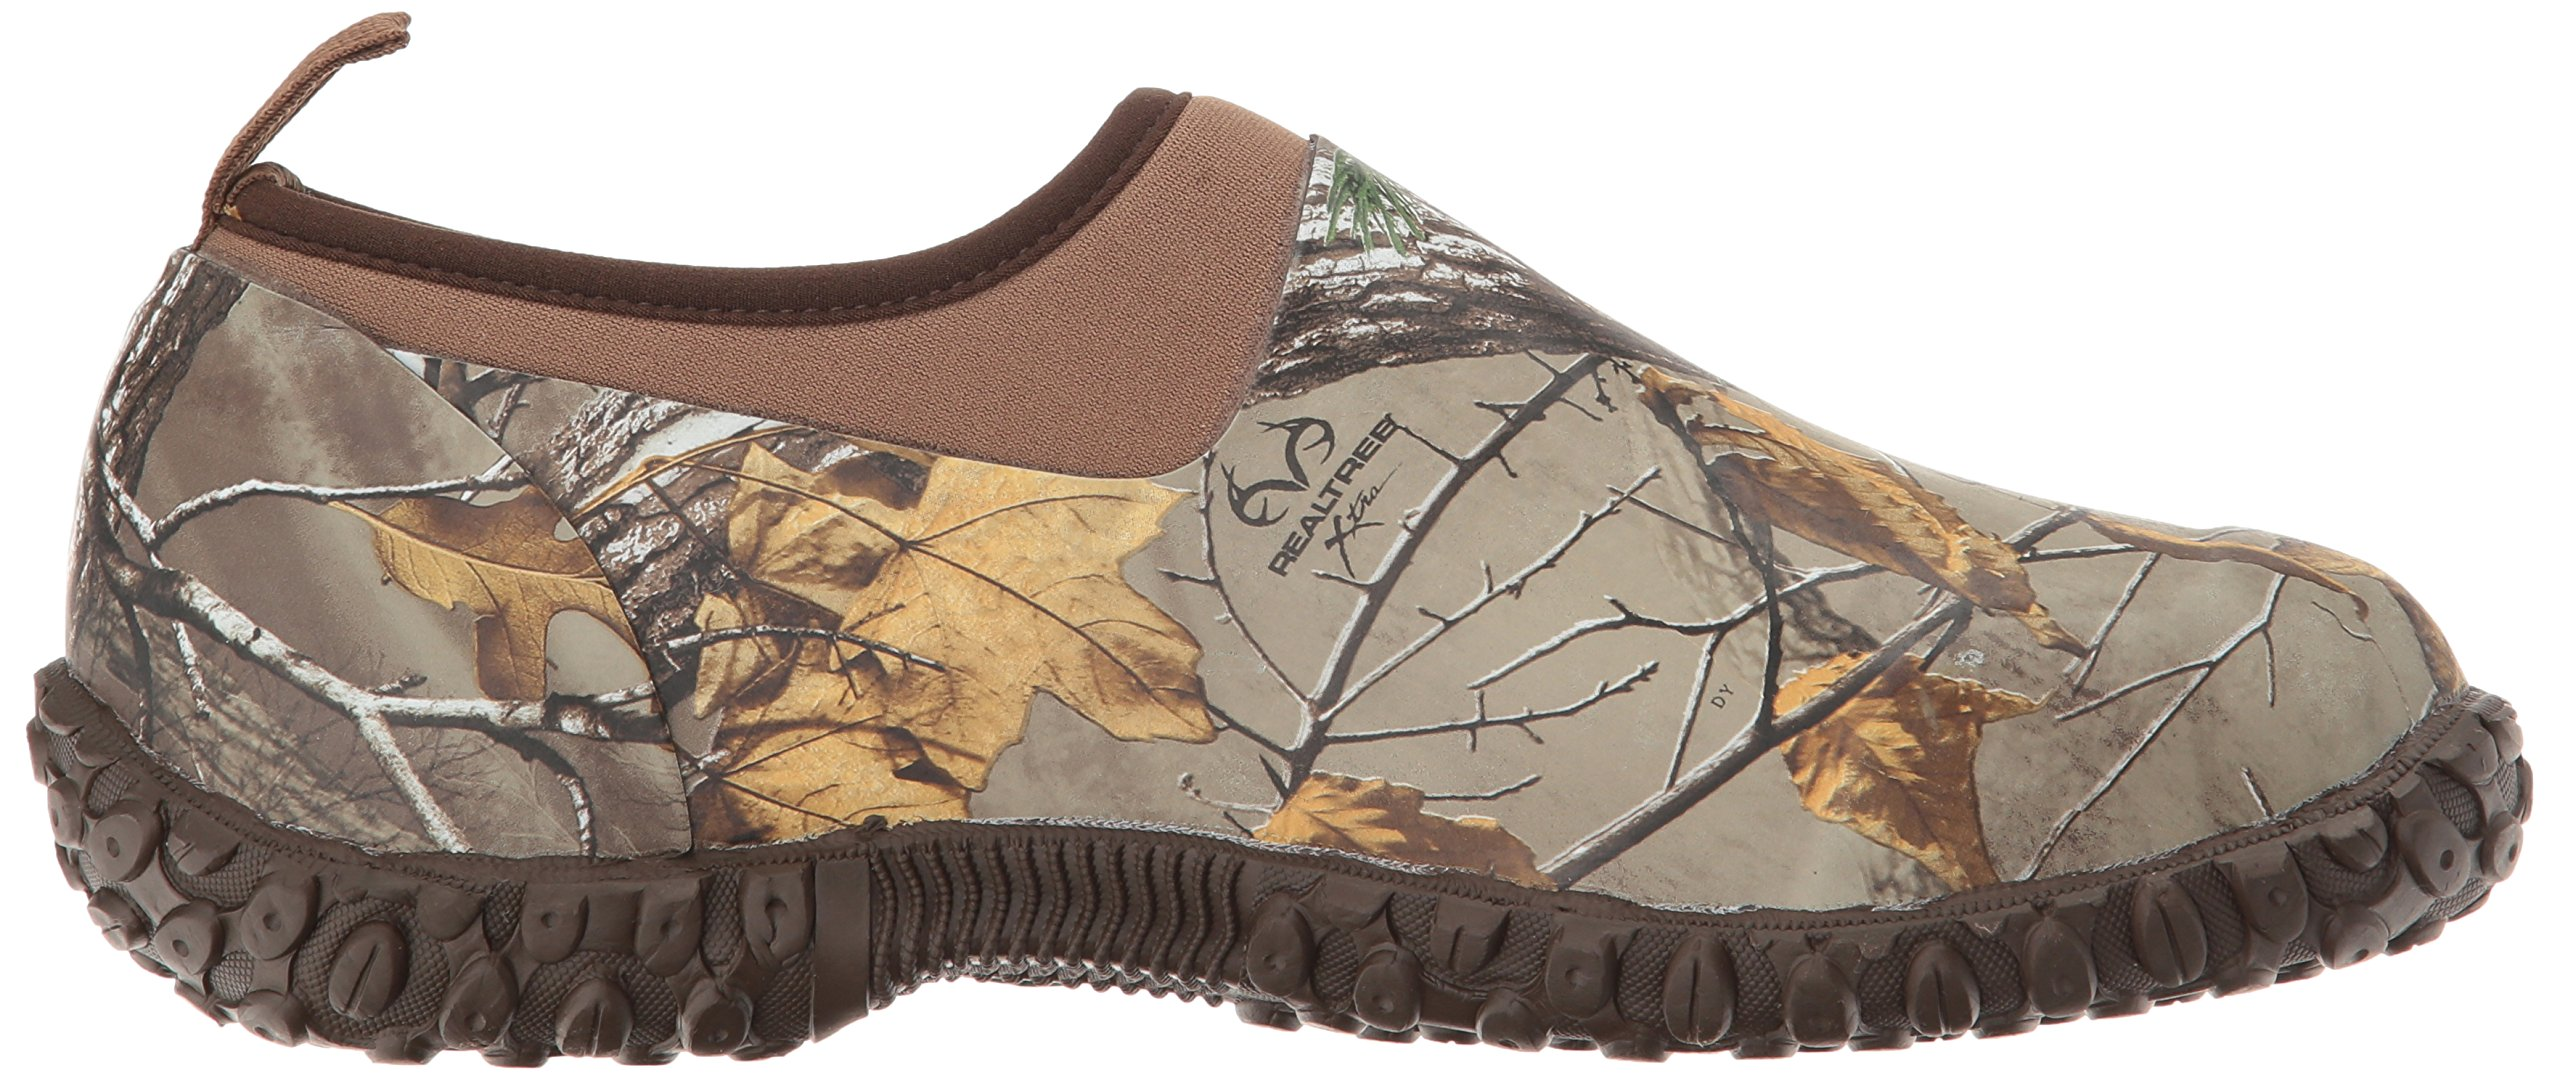 Muckster ll Men's Rubber Garden Shoes,Realtree XTRA,7 US/7-7.5 M US by Muck Boot (Image #8)